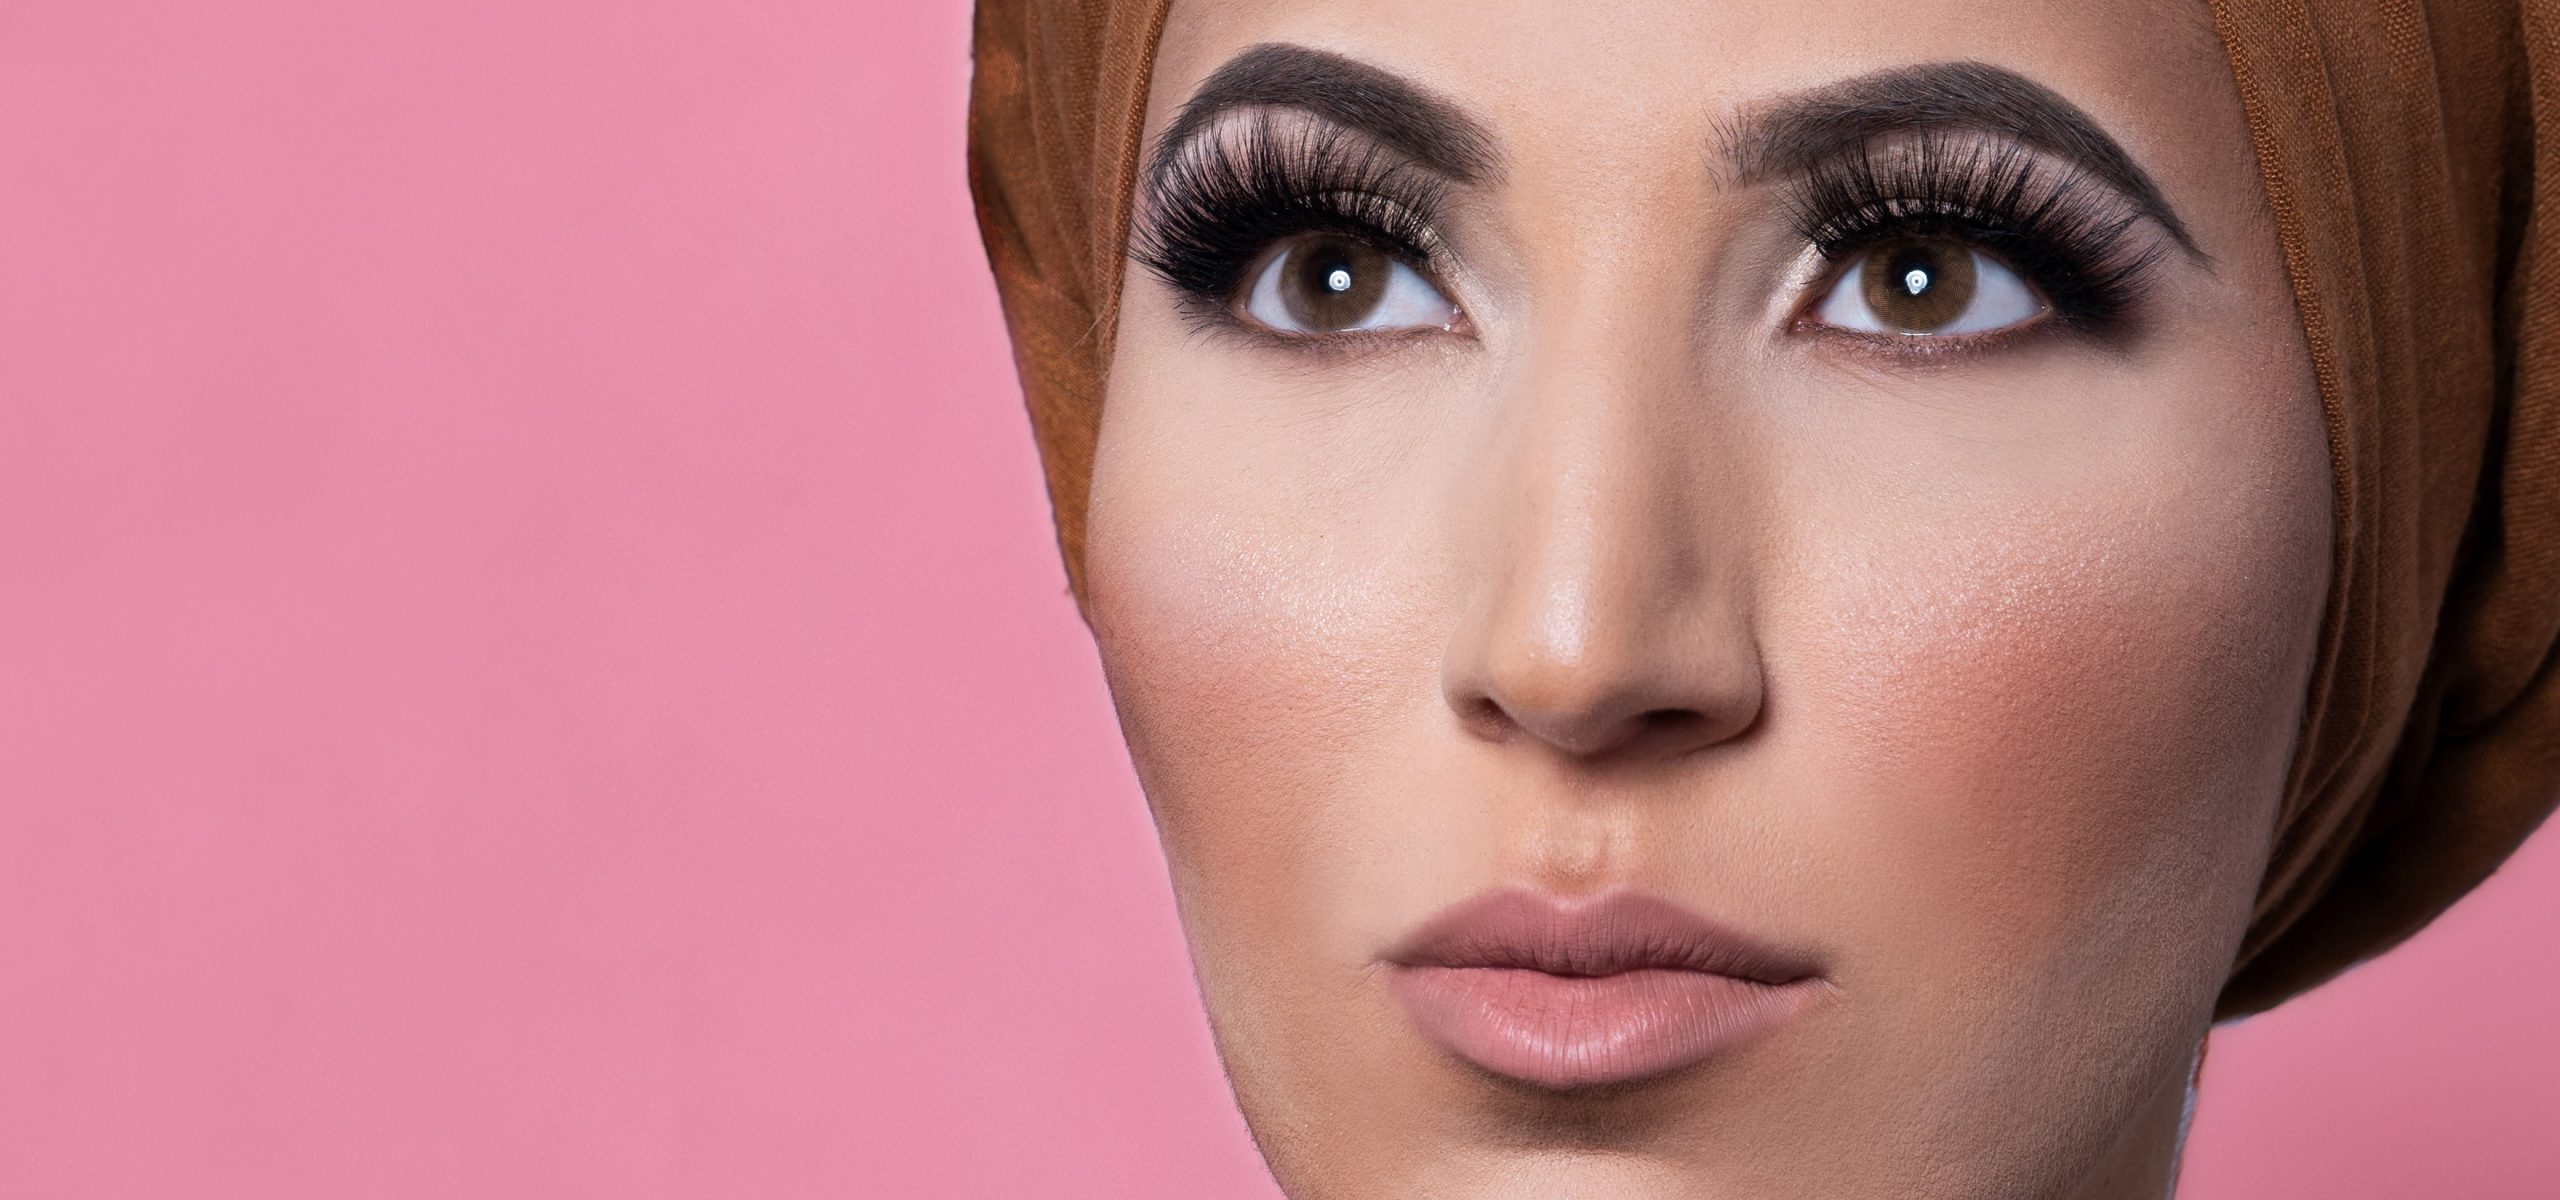 Lashes by Almas, kleurlenzen, lashes, hijab, beauty, nepwimpers